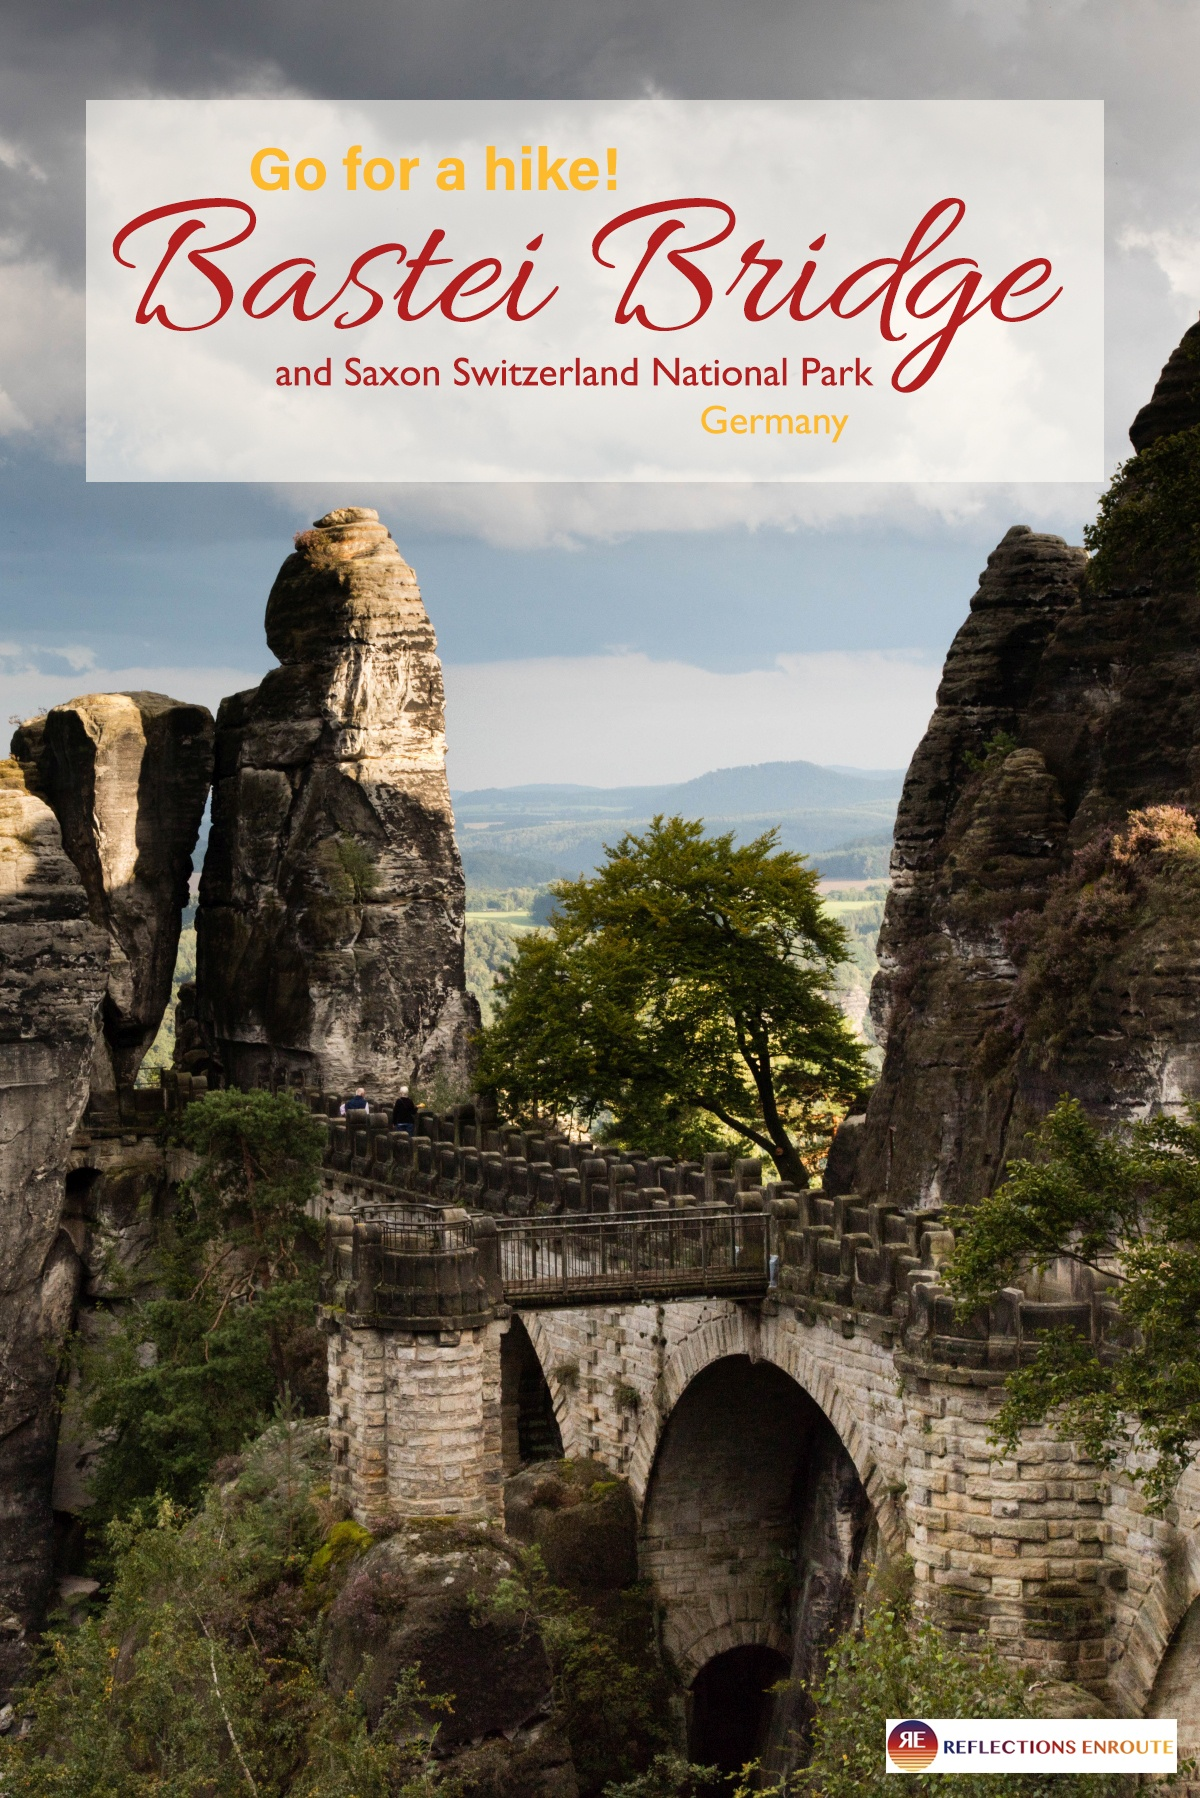 Go hiking in this beautiful place! The Bastei Bridge and its surrounding national park.